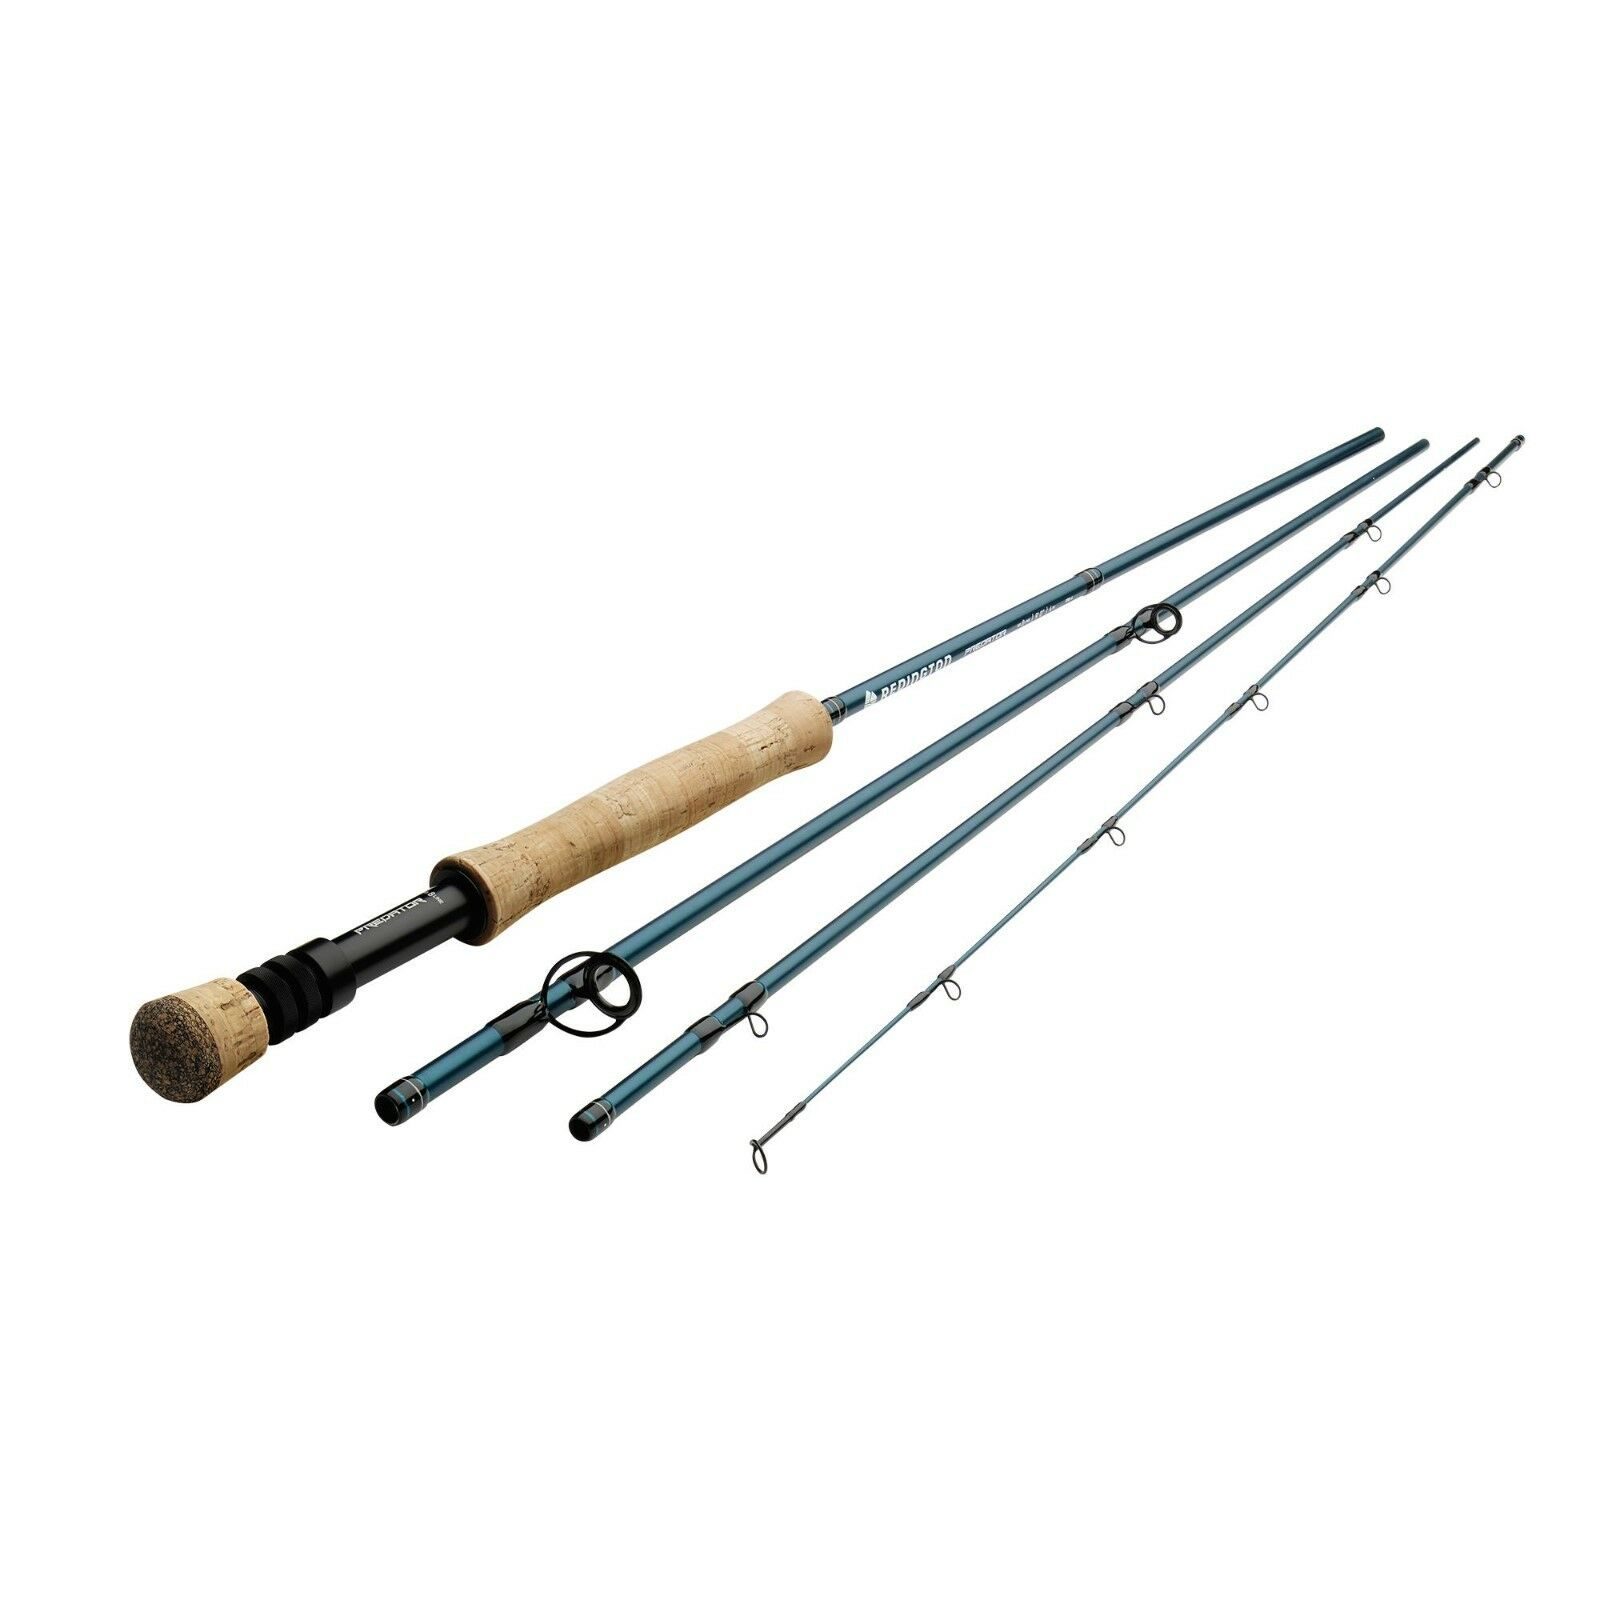 NEW REDINGTON PREDATOR 1290-4 SALTWATER  FRESHWATER 9' 12 WEIGHT FLY FISHING ROD